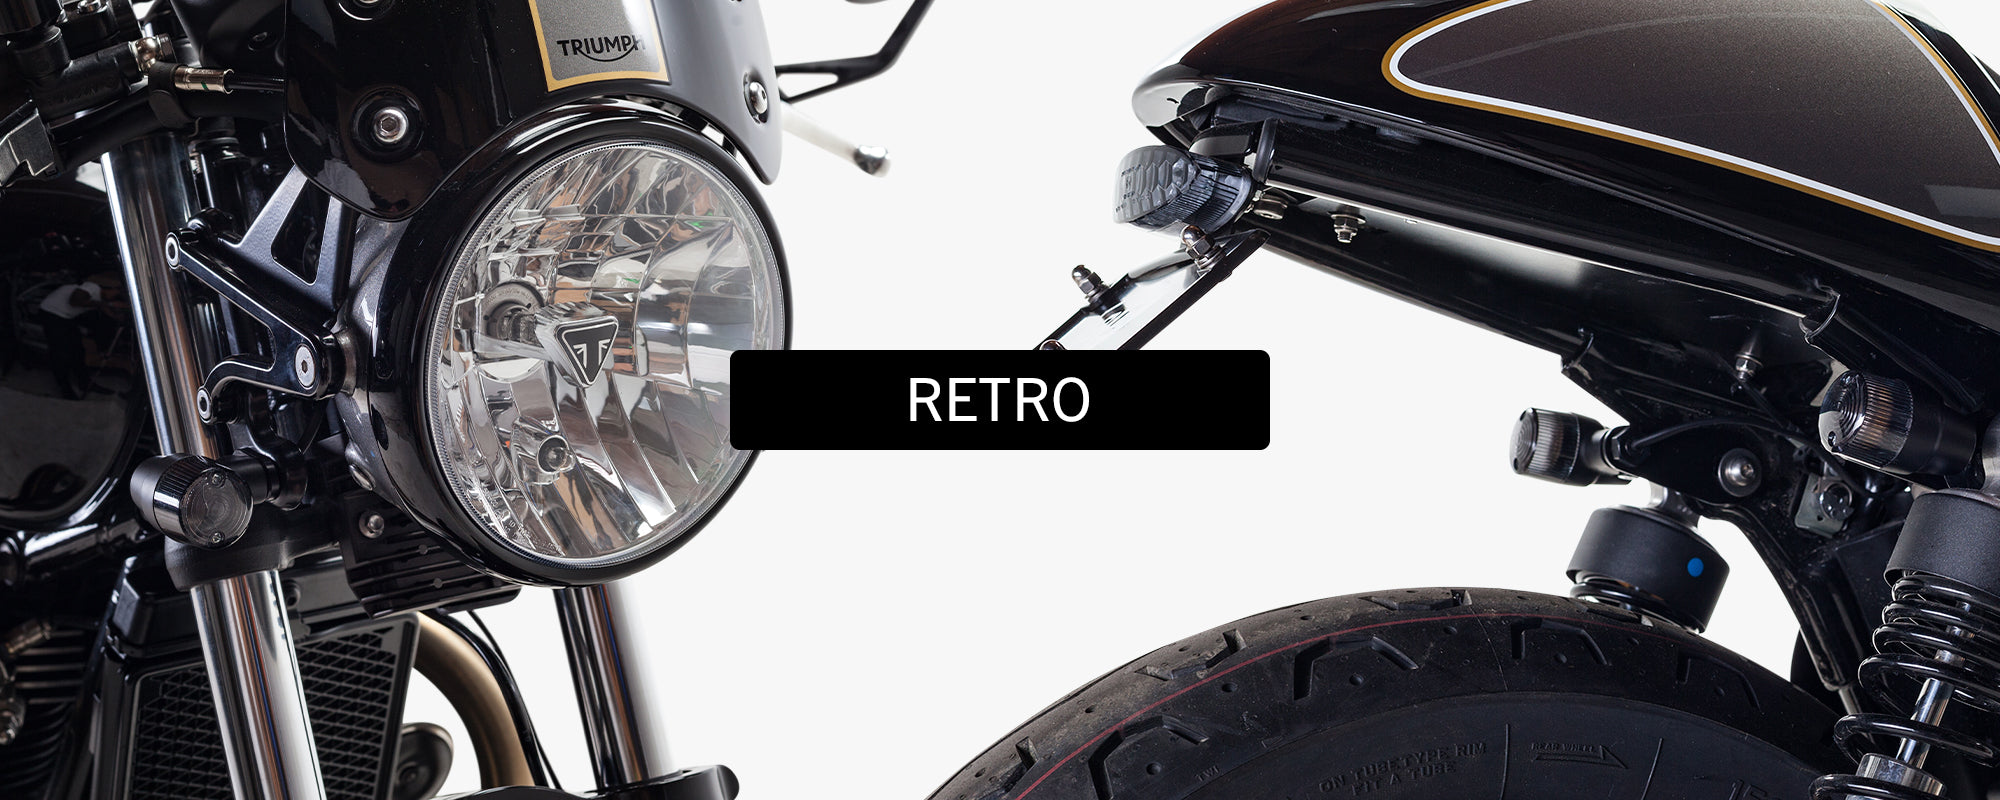 British Customs Retro Turn Signals Triumph Motorcycle